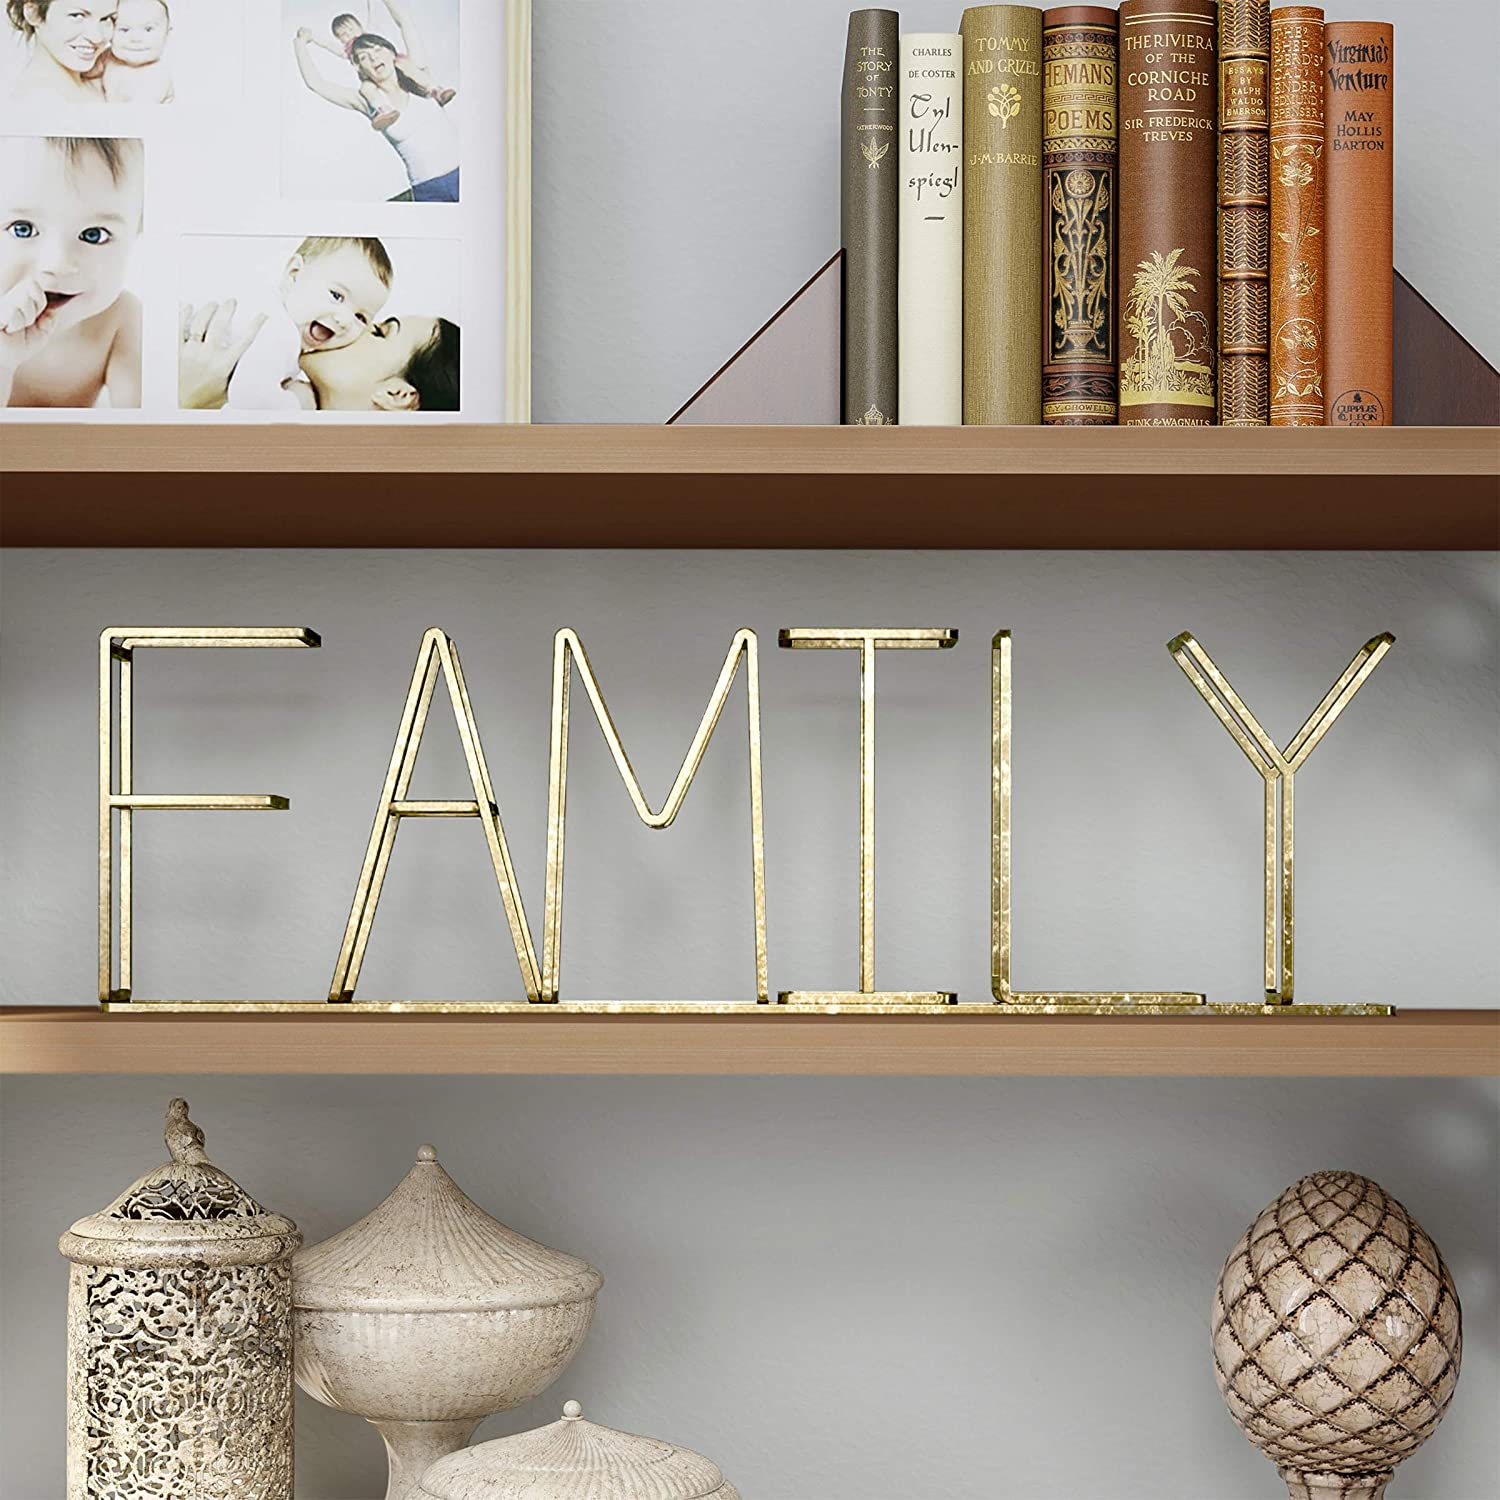 Lavish Home Cutout Free-Standing Table Top Sign-3D Family Word Art Accent Decor with Gold Metallic Finish-Modern, Classic, or Farmhouse Style